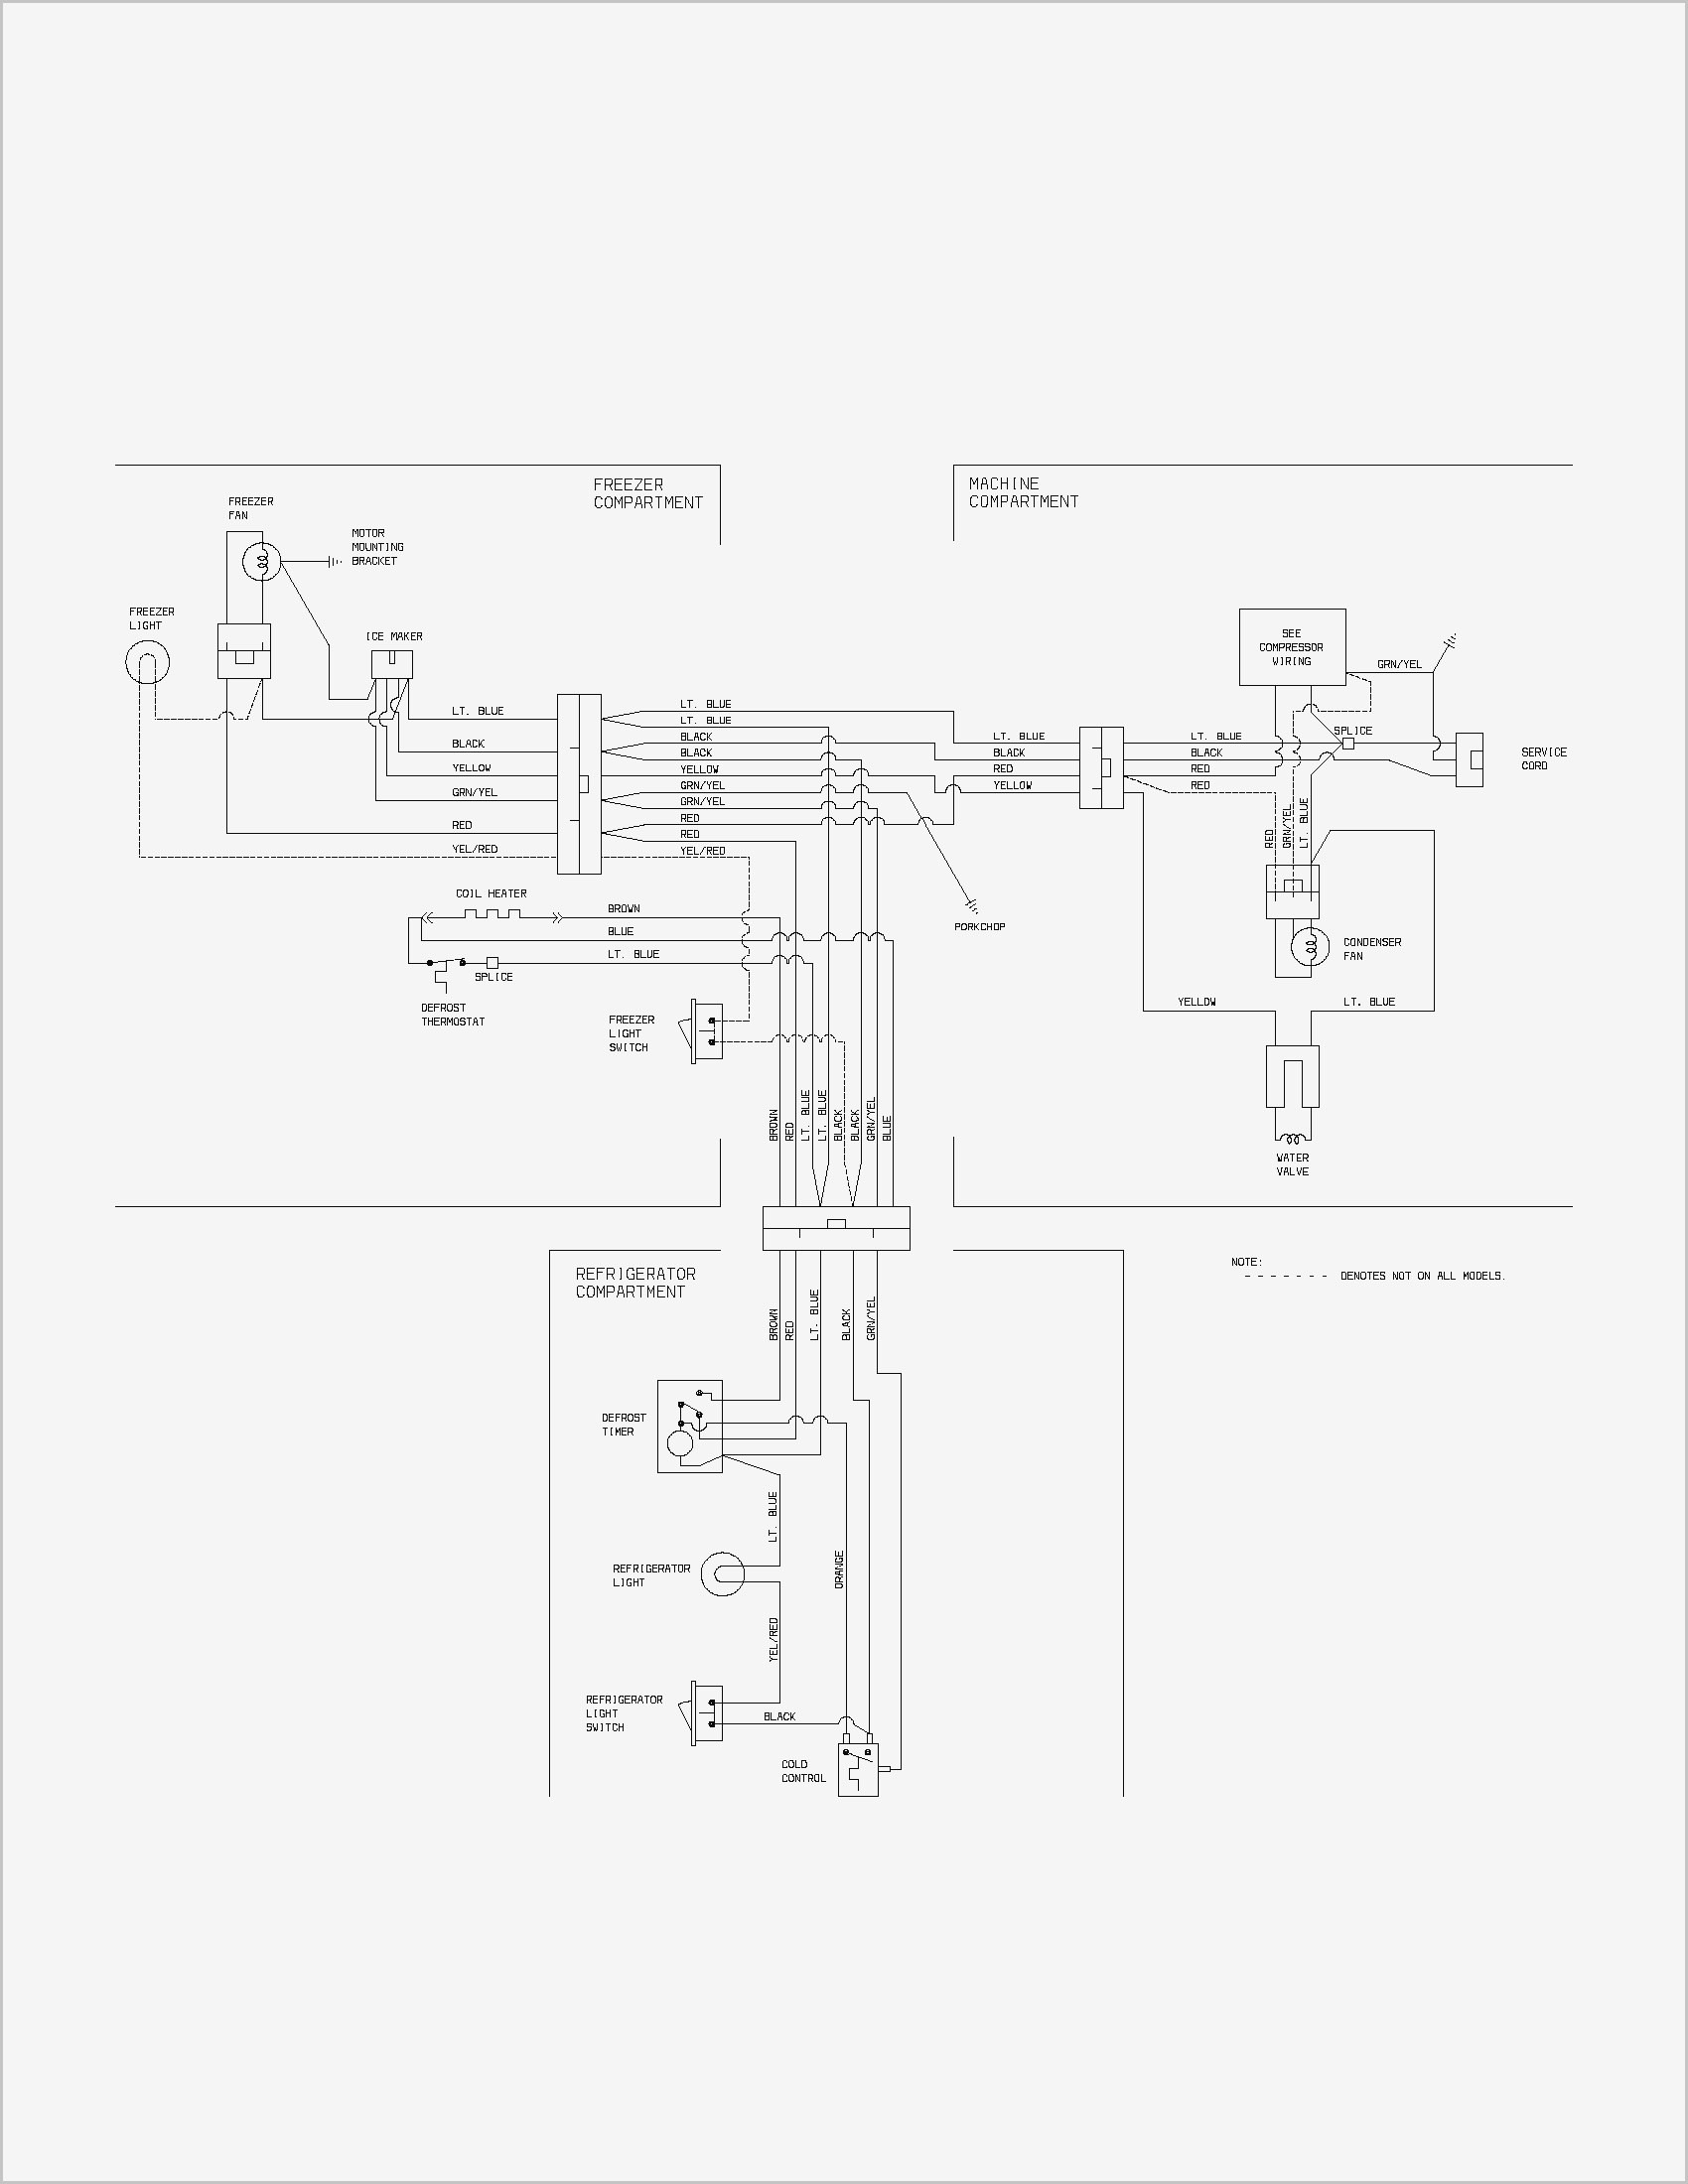 Wiring Photocell to Lighting Contactor 480v Cell Wiring Diagram Of Wiring Photocell to Lighting Contactor F62dca3 tork Lighting Contactor Wiring Diagram